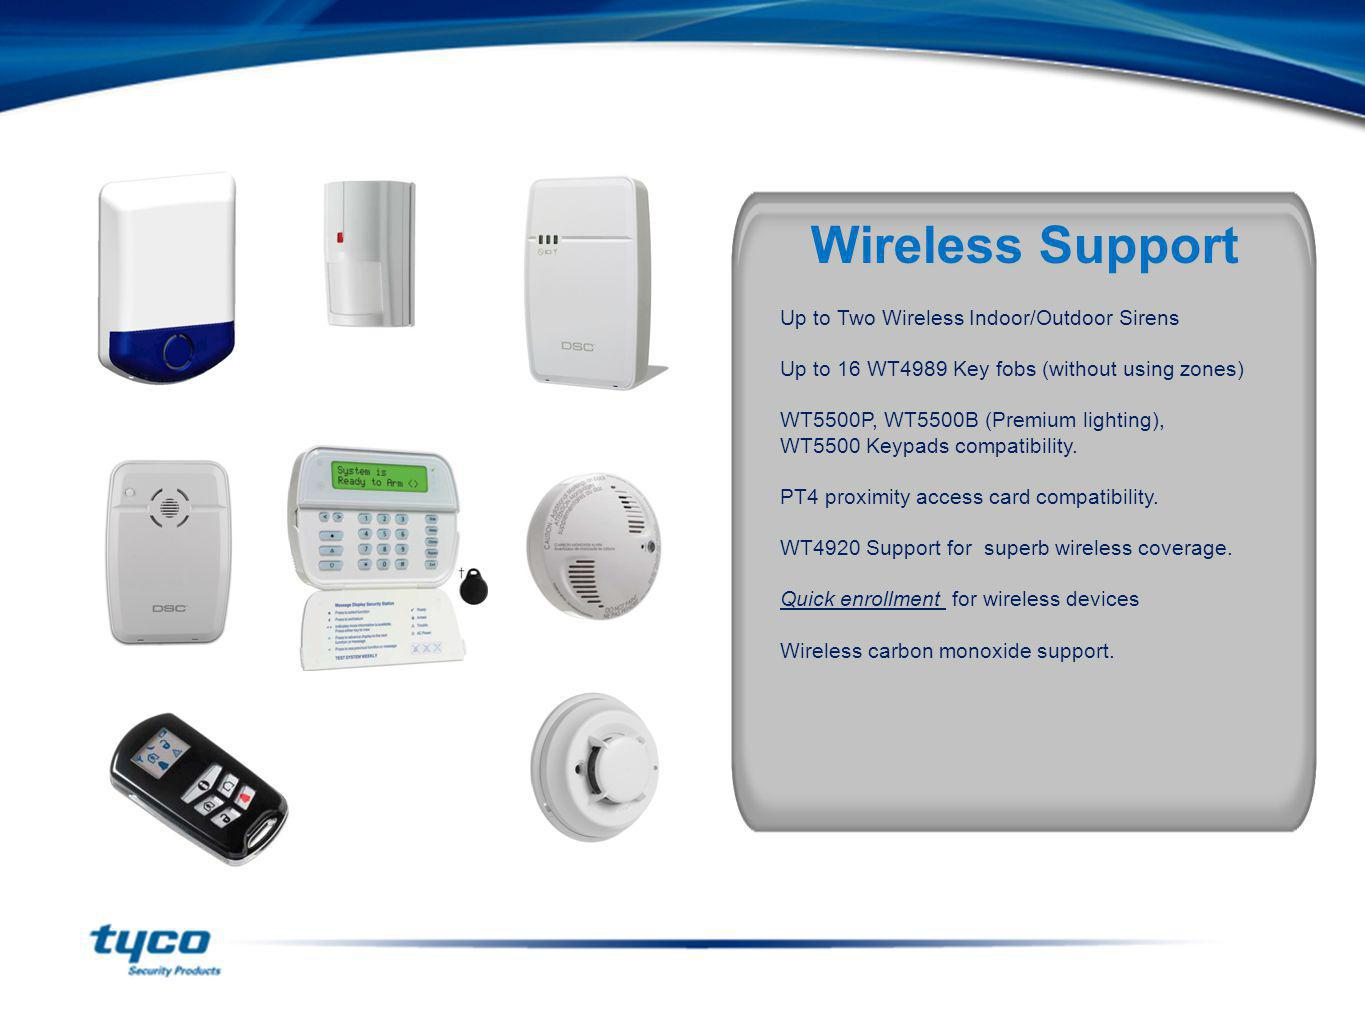 Wireless Support New 1 & 2 way wireless support!